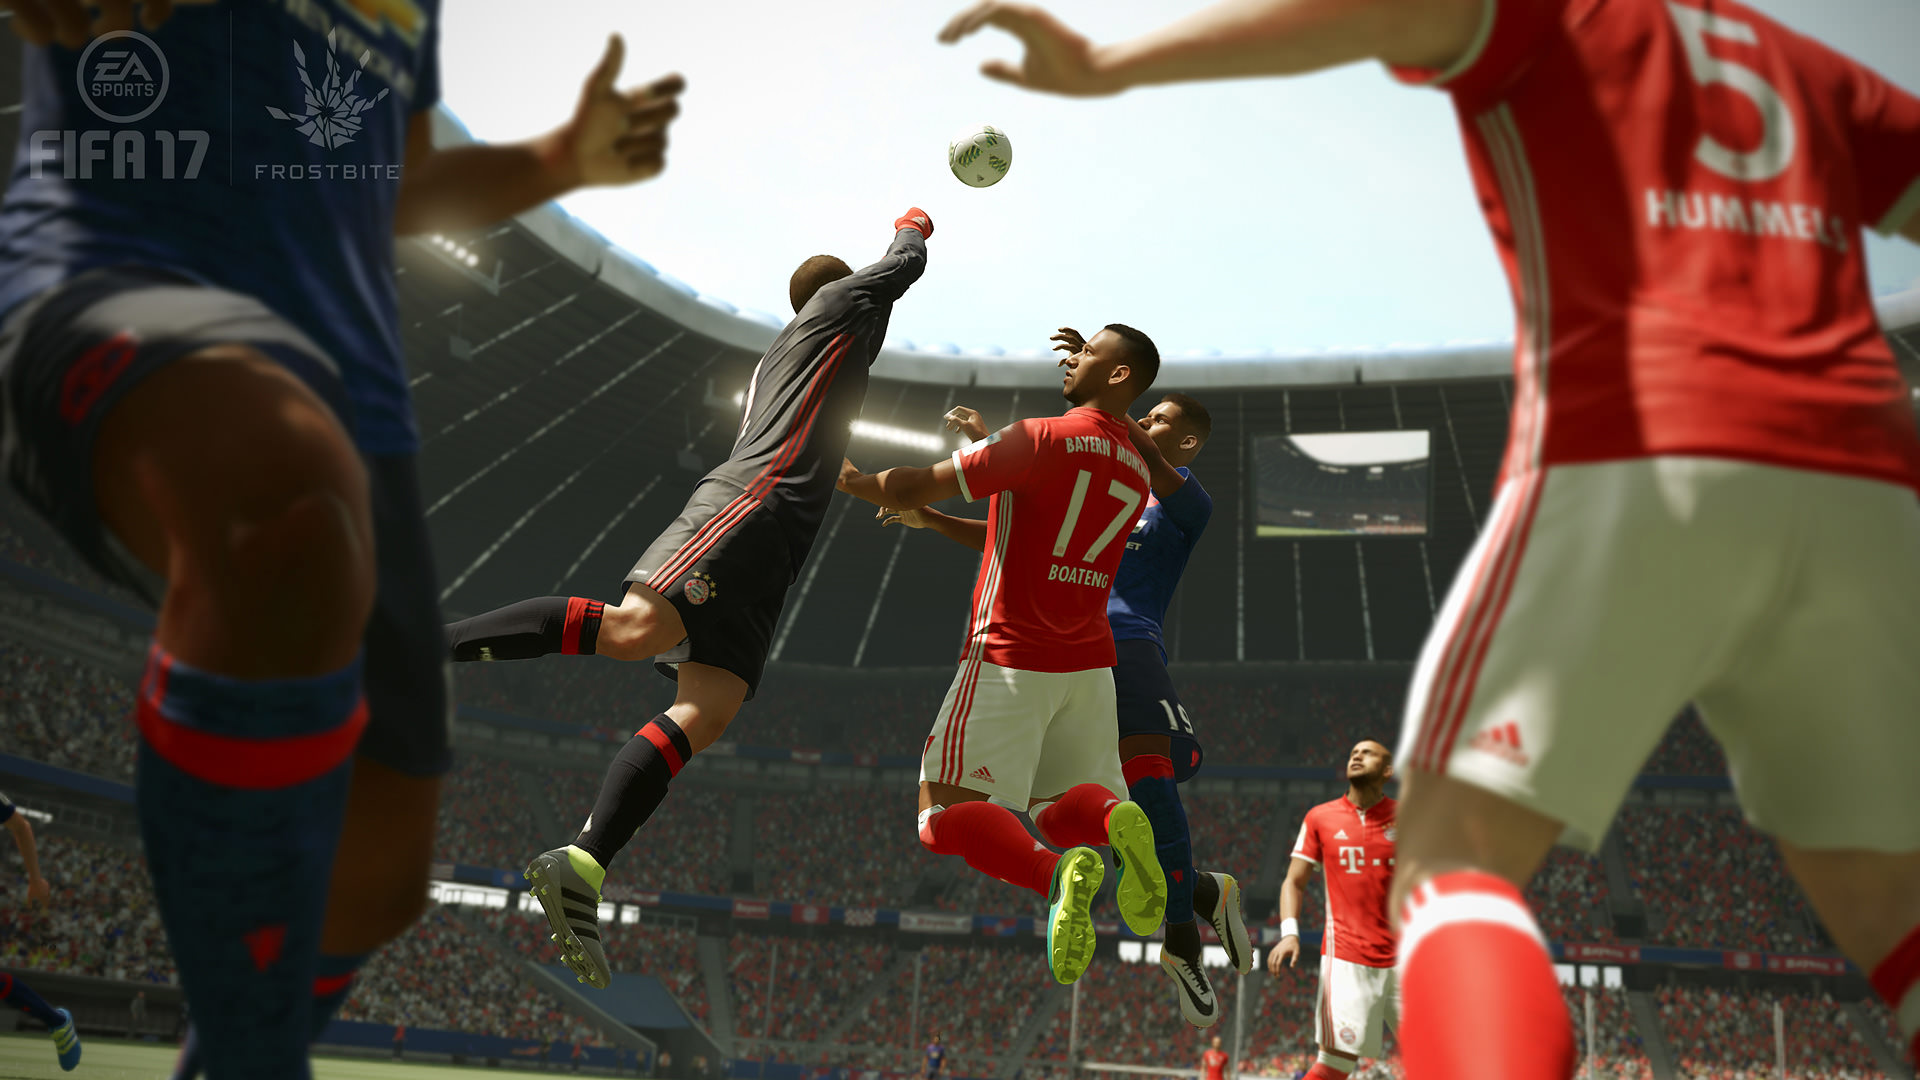 FIFA 17 – EA Partnership with FC Bayern Munich